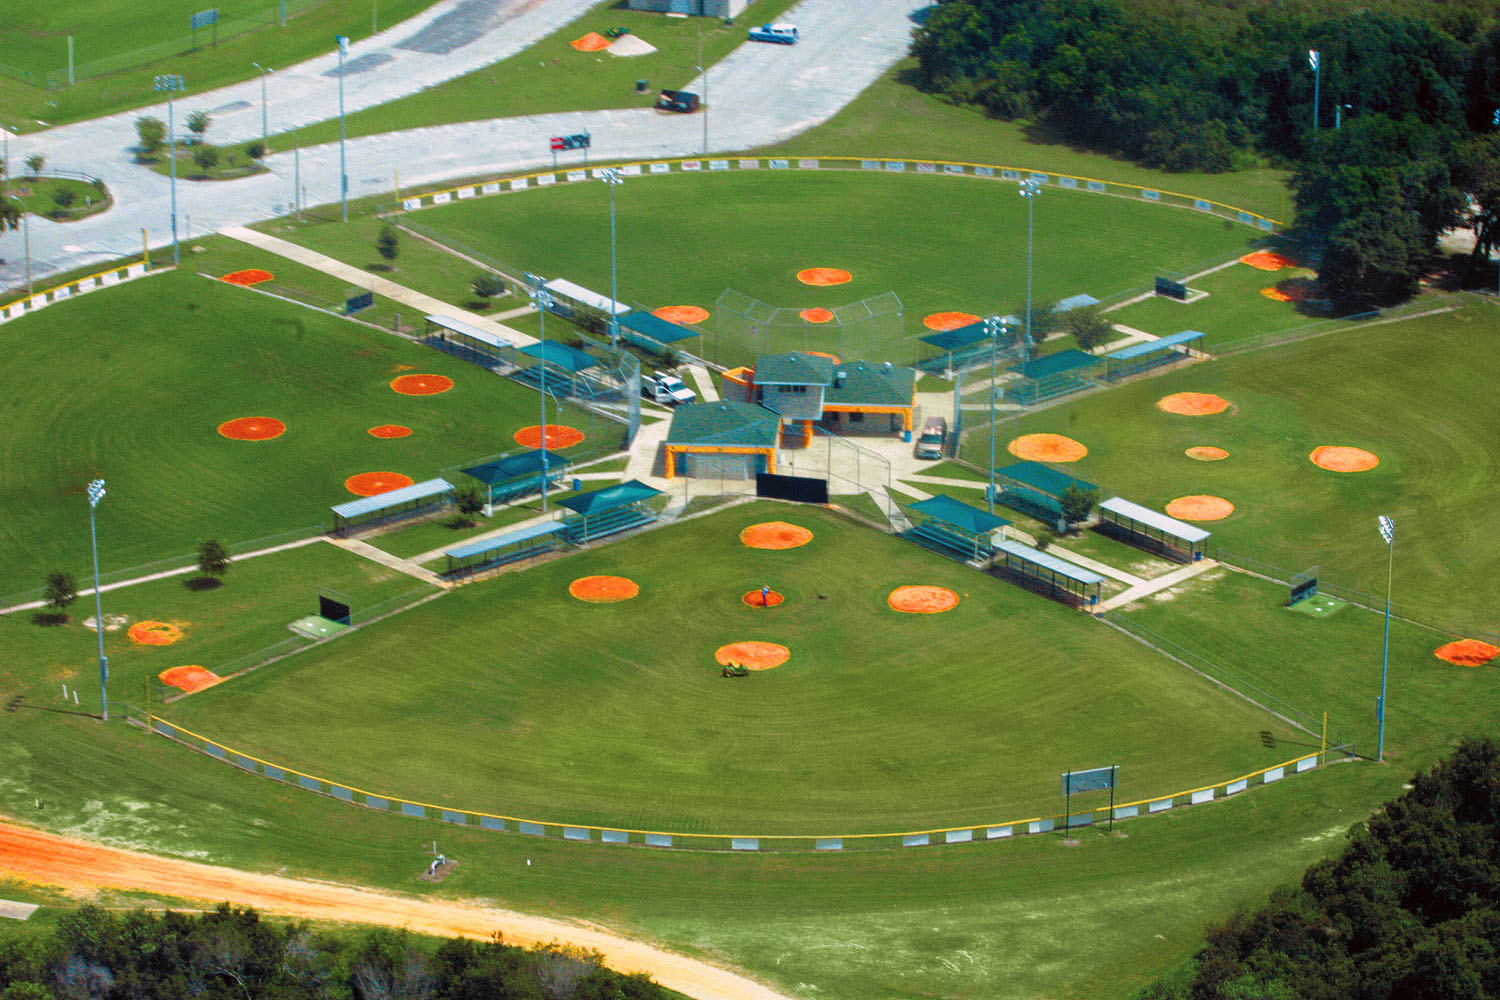 An aerial view of the baseball fields at Loyce E. Harpe Park